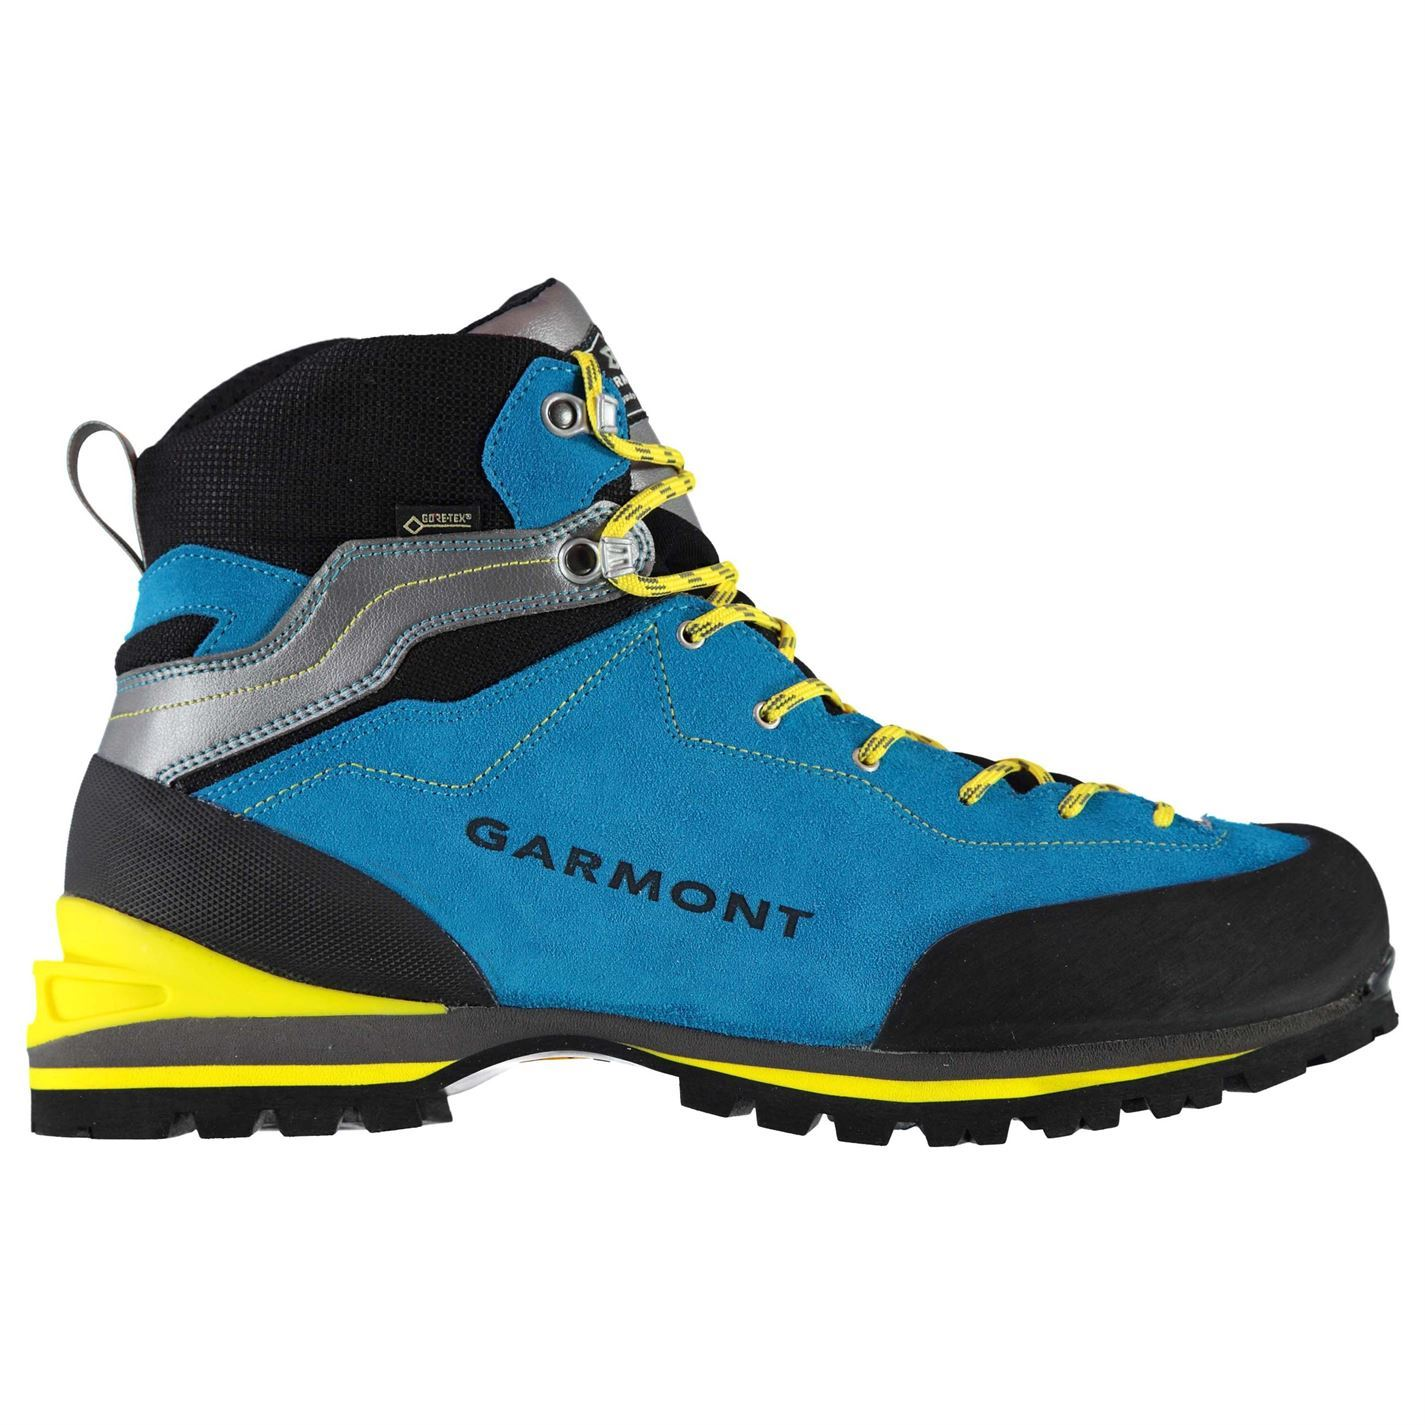 Garmont-Mens-Ascent-GTX-Shoes-Outdoor-Walking-Trekking-Hiking-Lace-Up